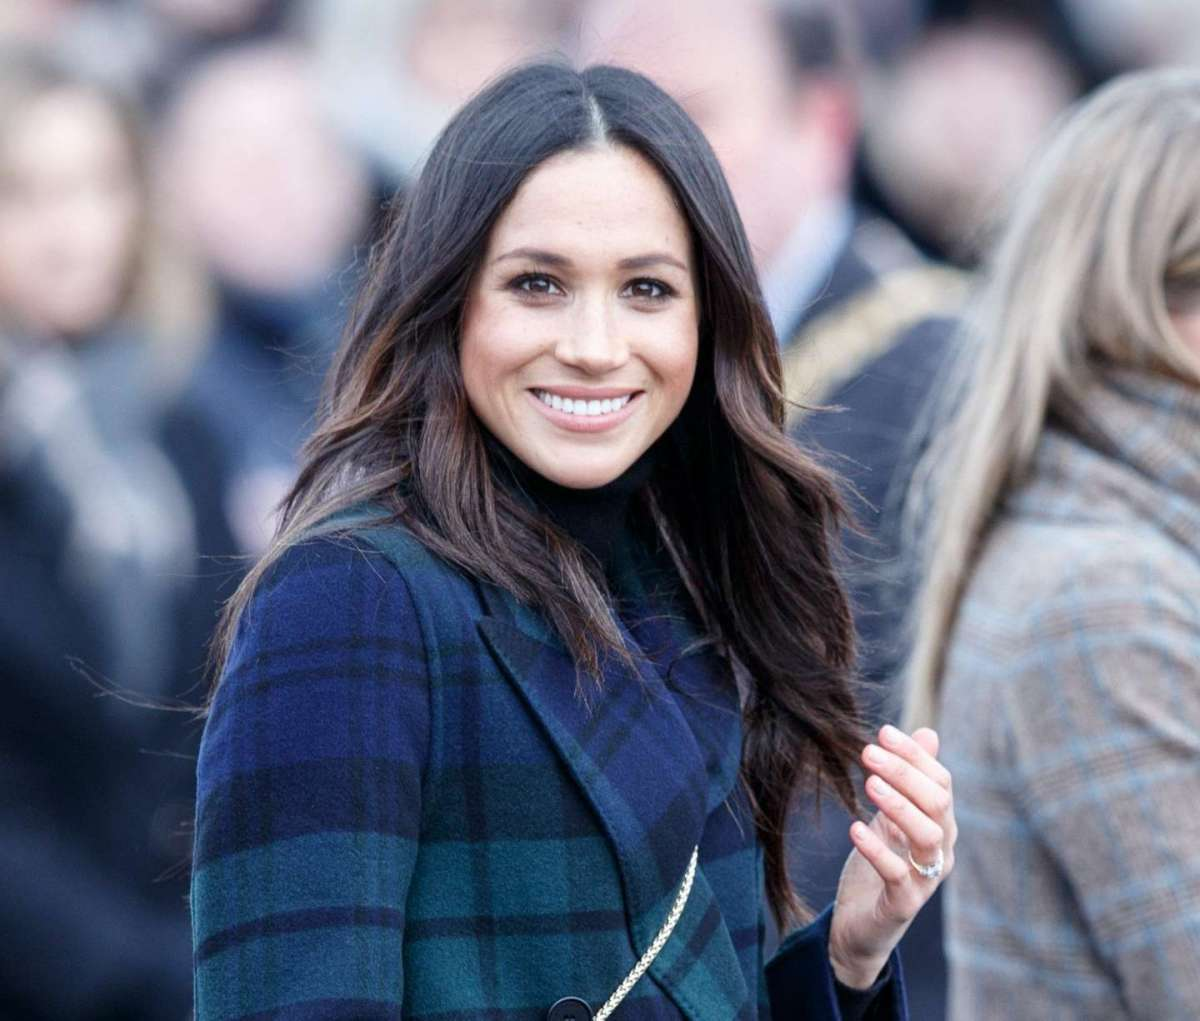 Gli hair look di Meghan Markle